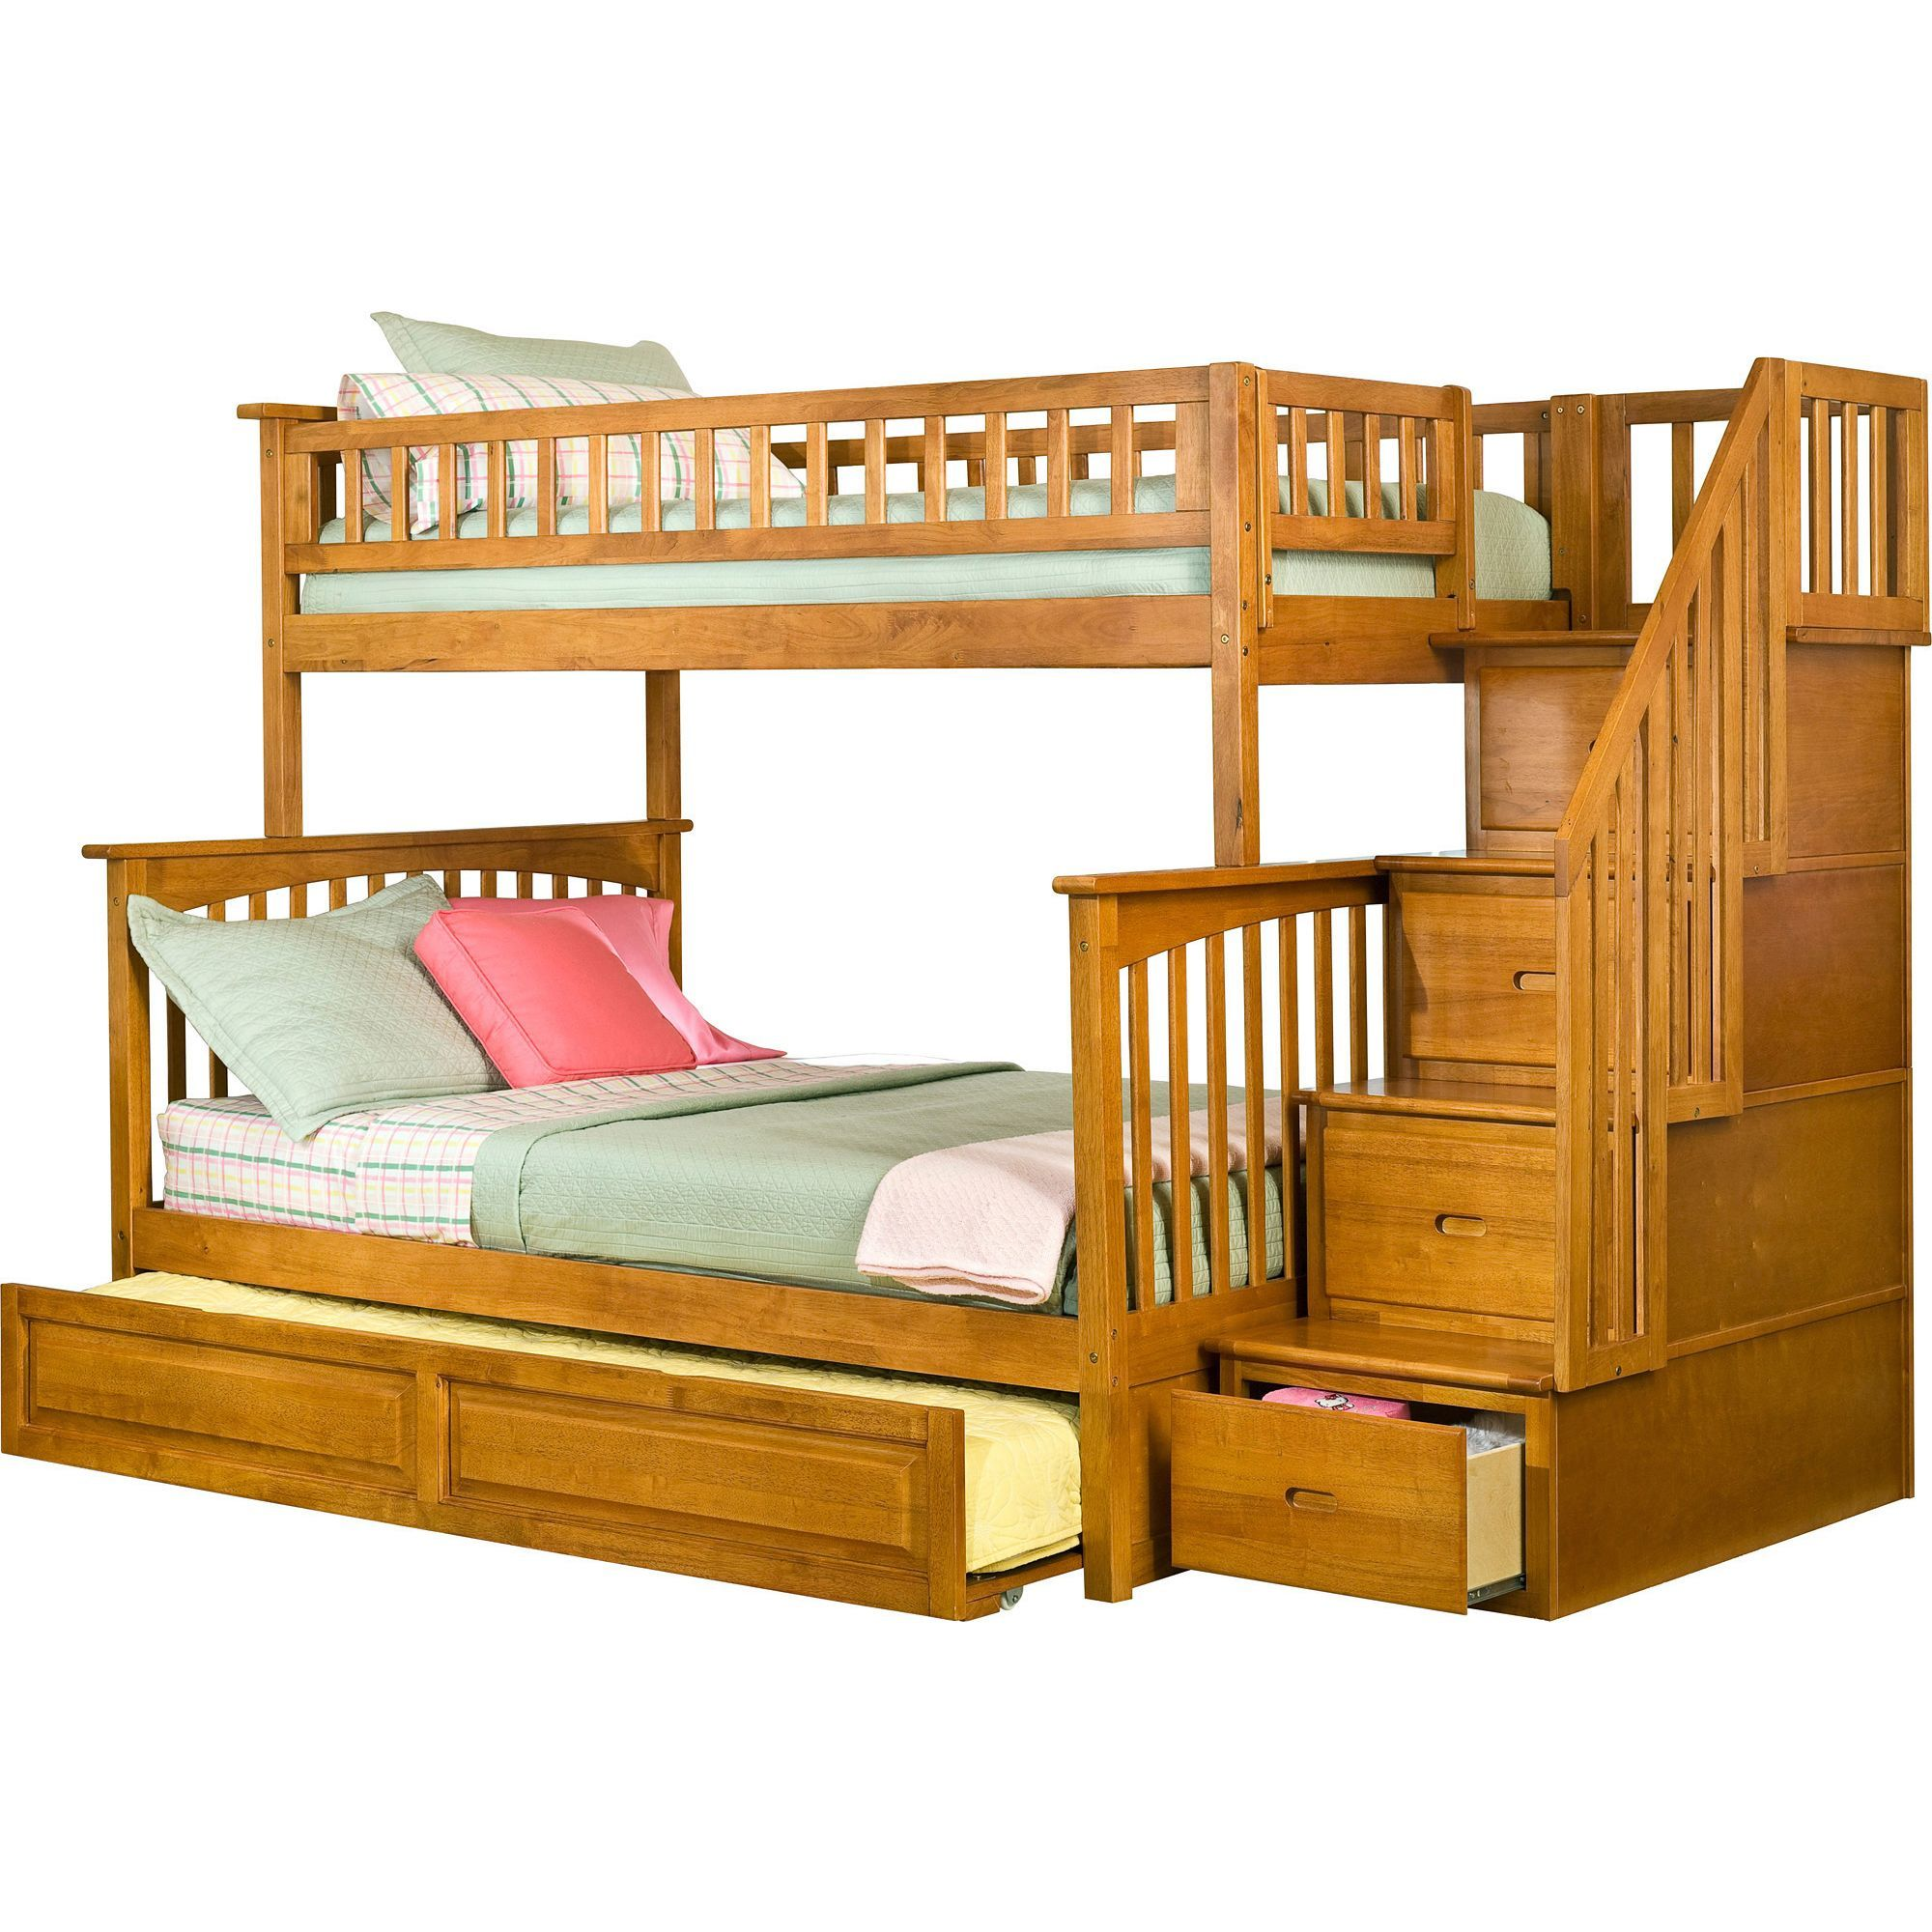 Twin over full loft bed with stairs  Atlantic Furniture Columbia Caramel Latte Twinoverfull Staircase